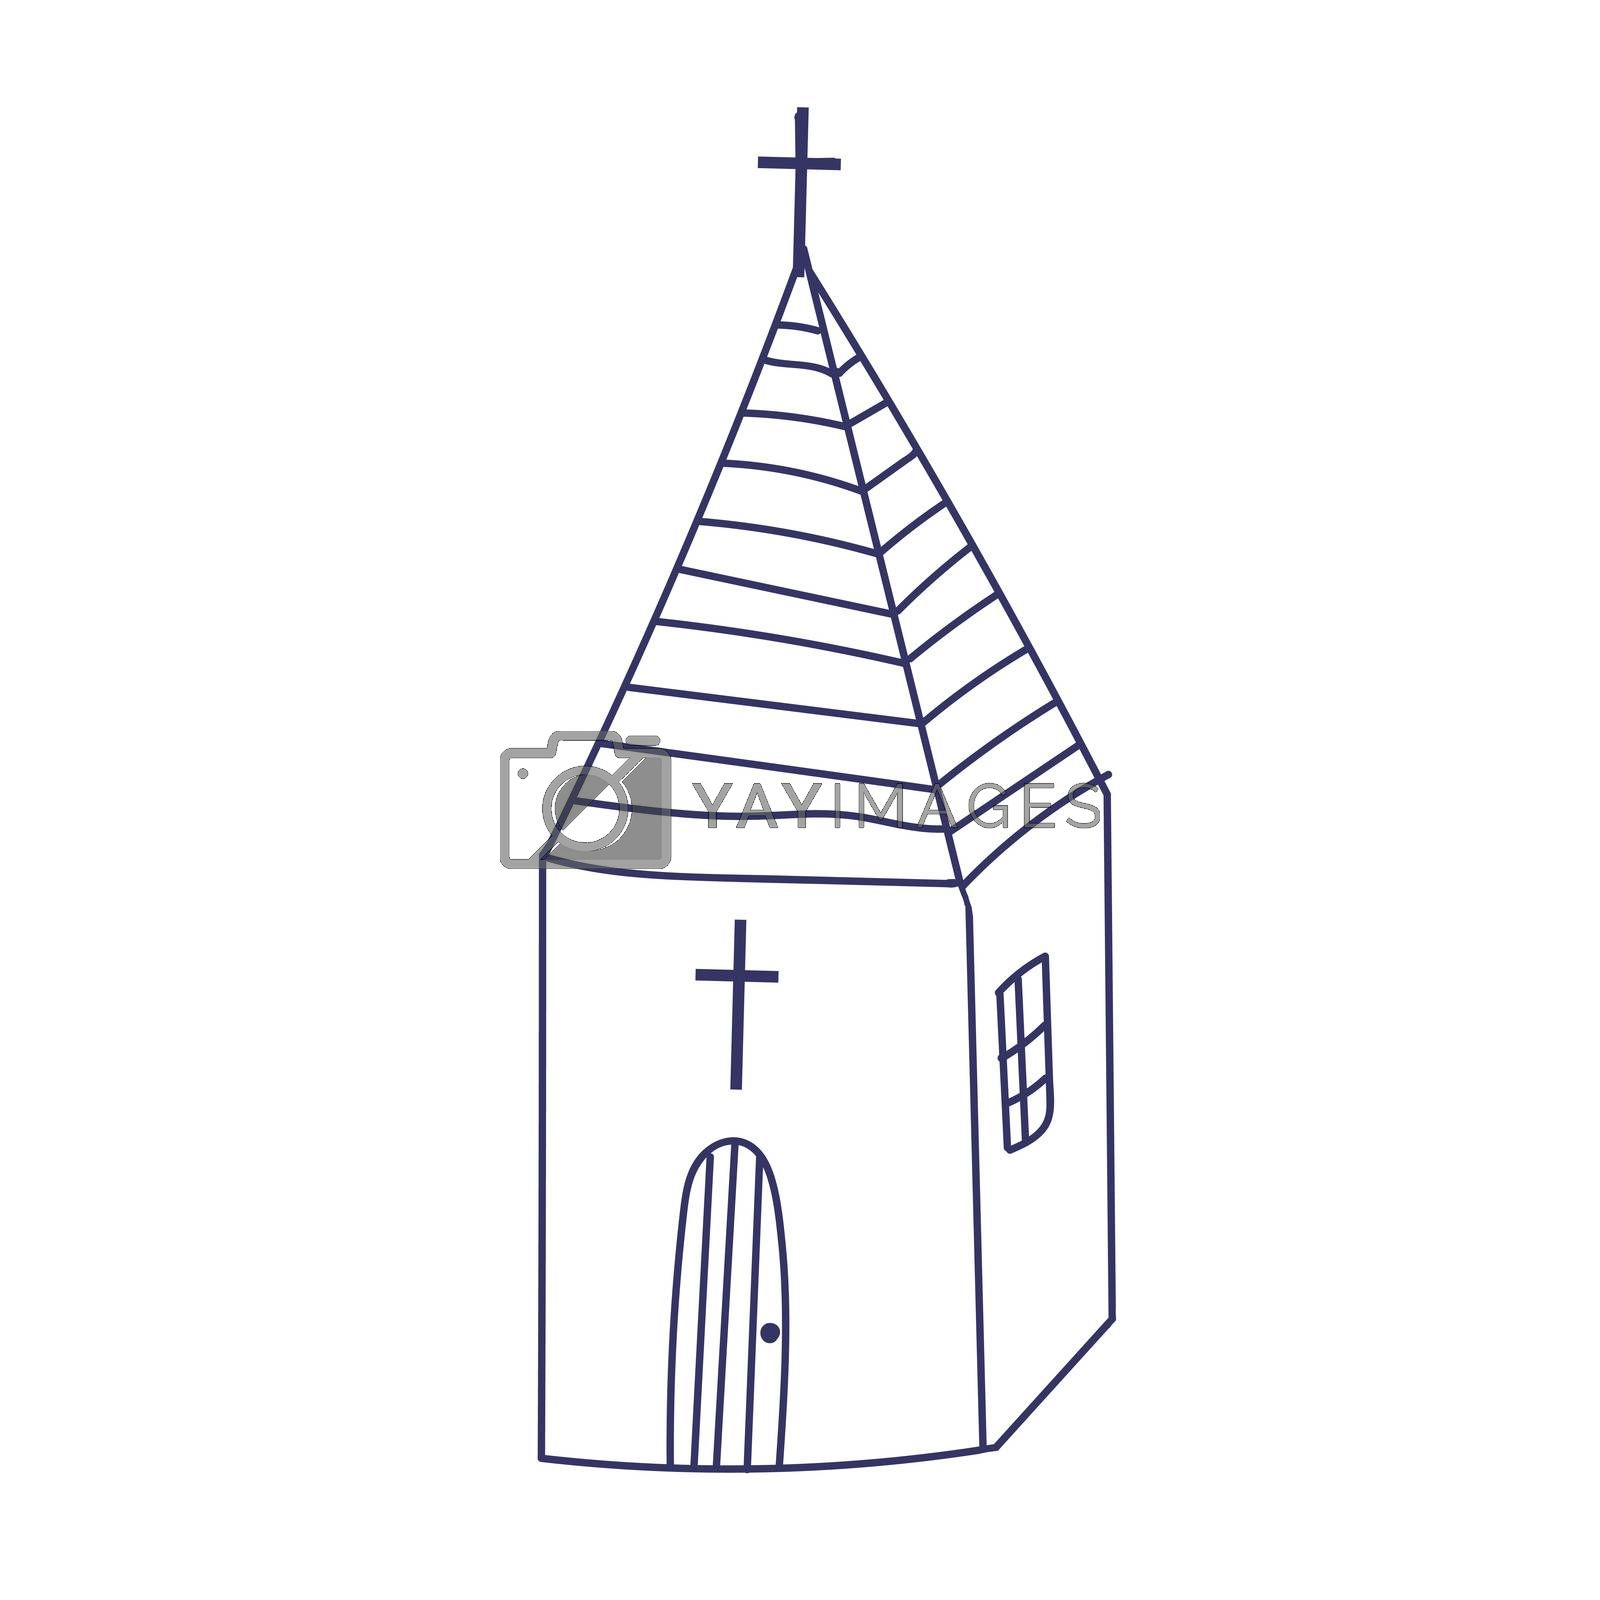 Hand drawn doodle Christian building church icon with Catholic cross illustration sketchy traditional symbol Cute cartoon religious concept element.